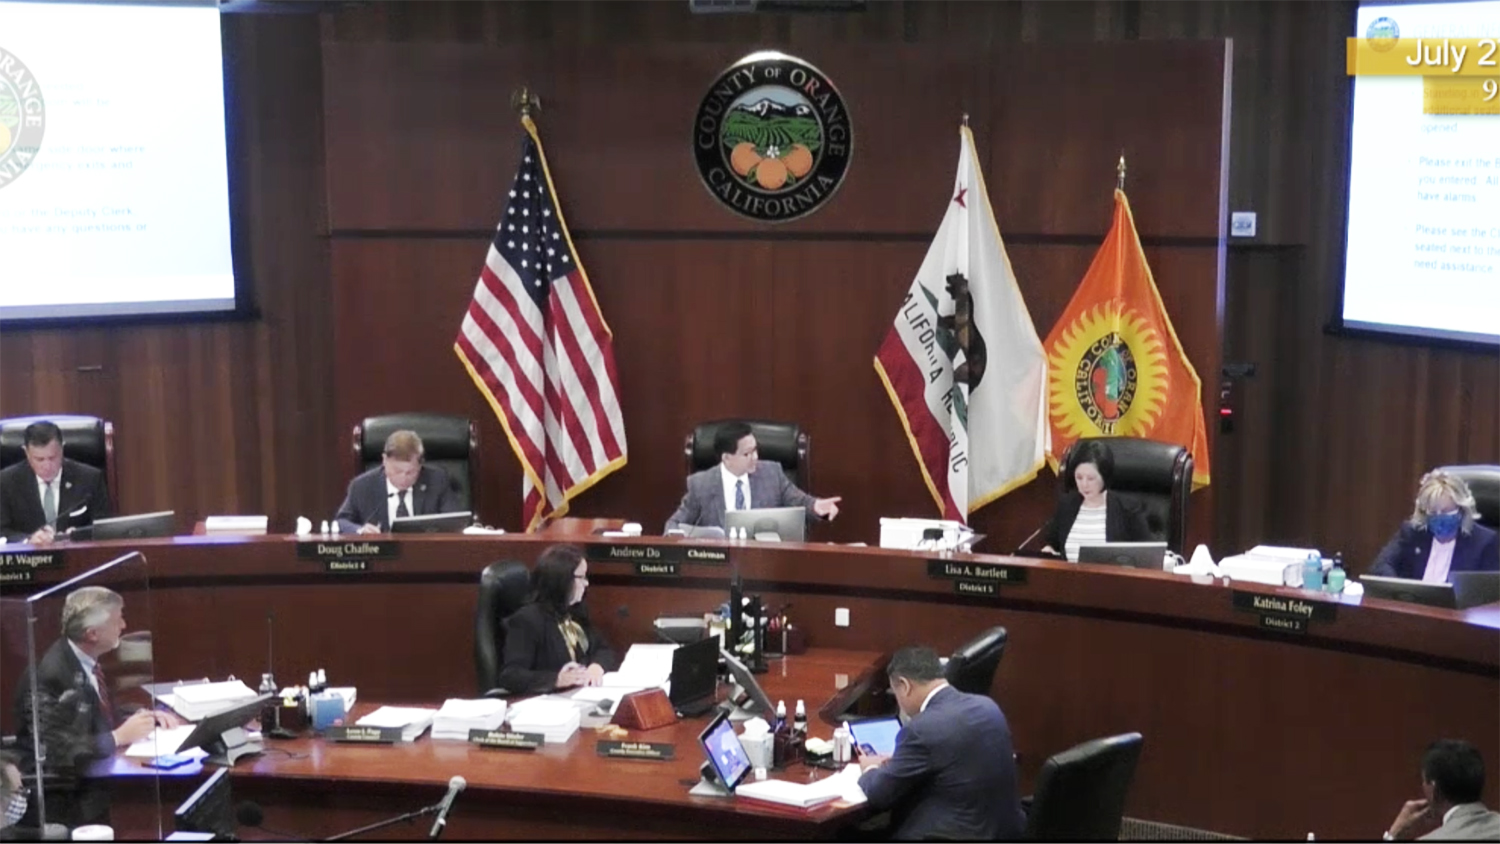 OC Supervisors Bury Public COVID Updates, Shut Down Effort to Have Experts Answer Questions